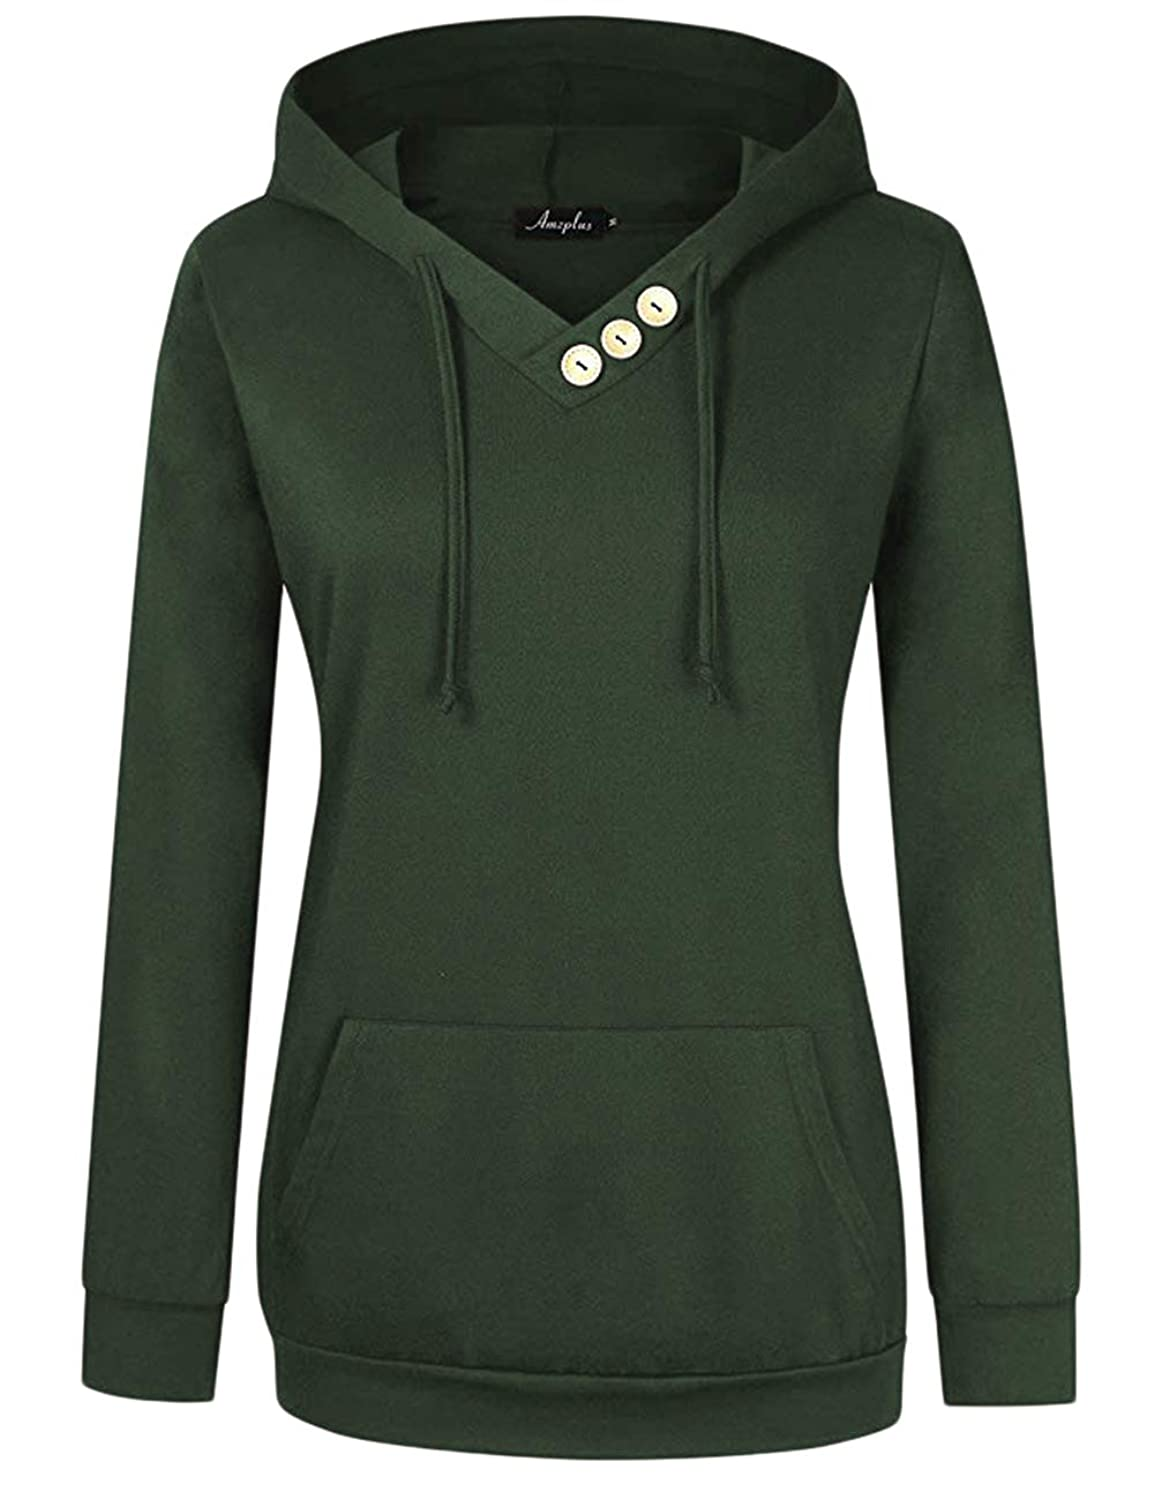 94f5d79d2 Features: AMZ PLUS Long Sleeve V Neck Drawstring Hood Pullover Kangaroo  Pocket Sweatshirt Hoodie with Button Collar Decoration.